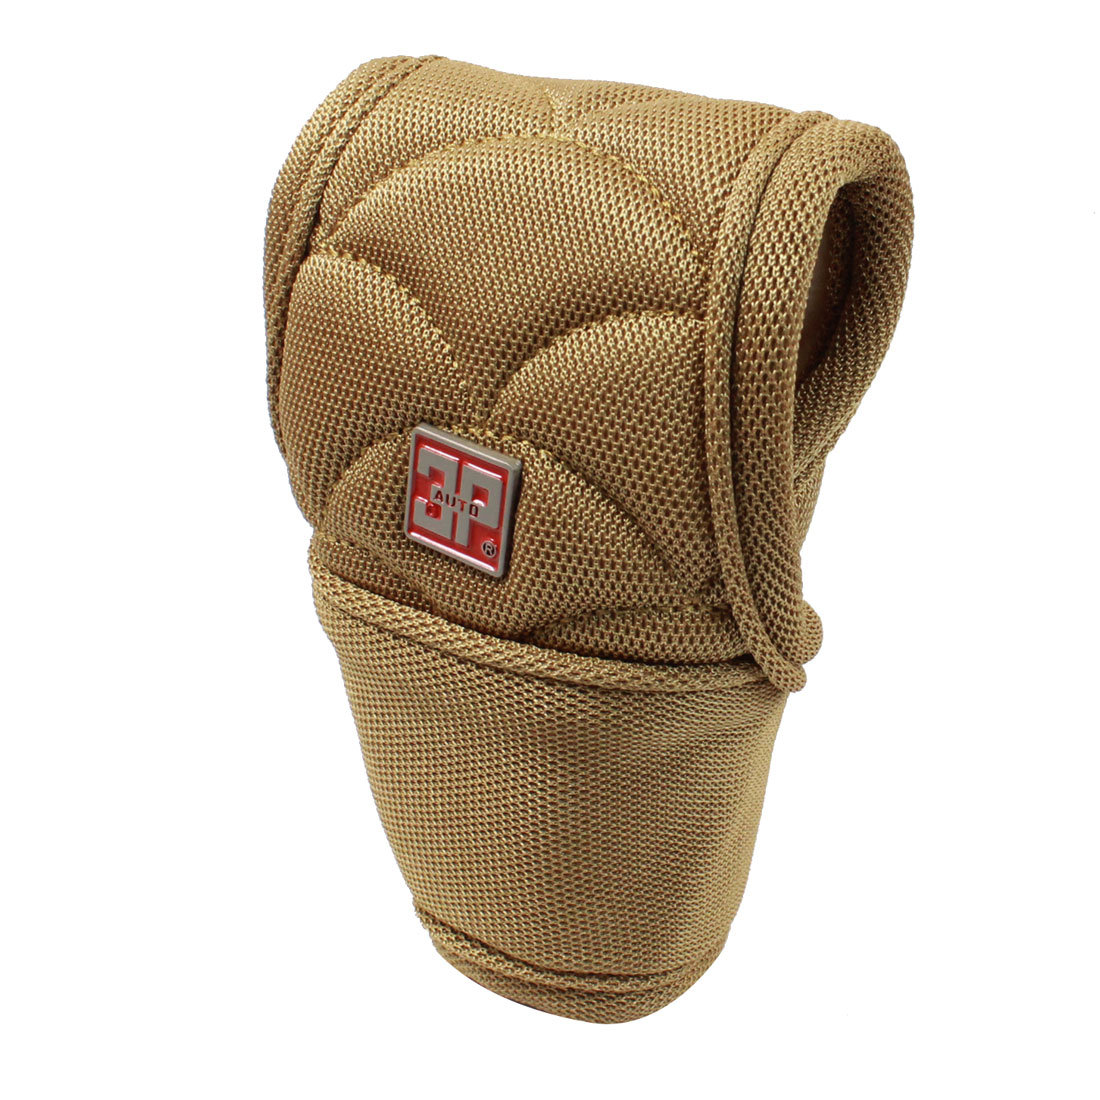 Brown Nonslip Nylon Gear Hand Shift Knob Boot Cover Protector 12 x 7cm for Auto